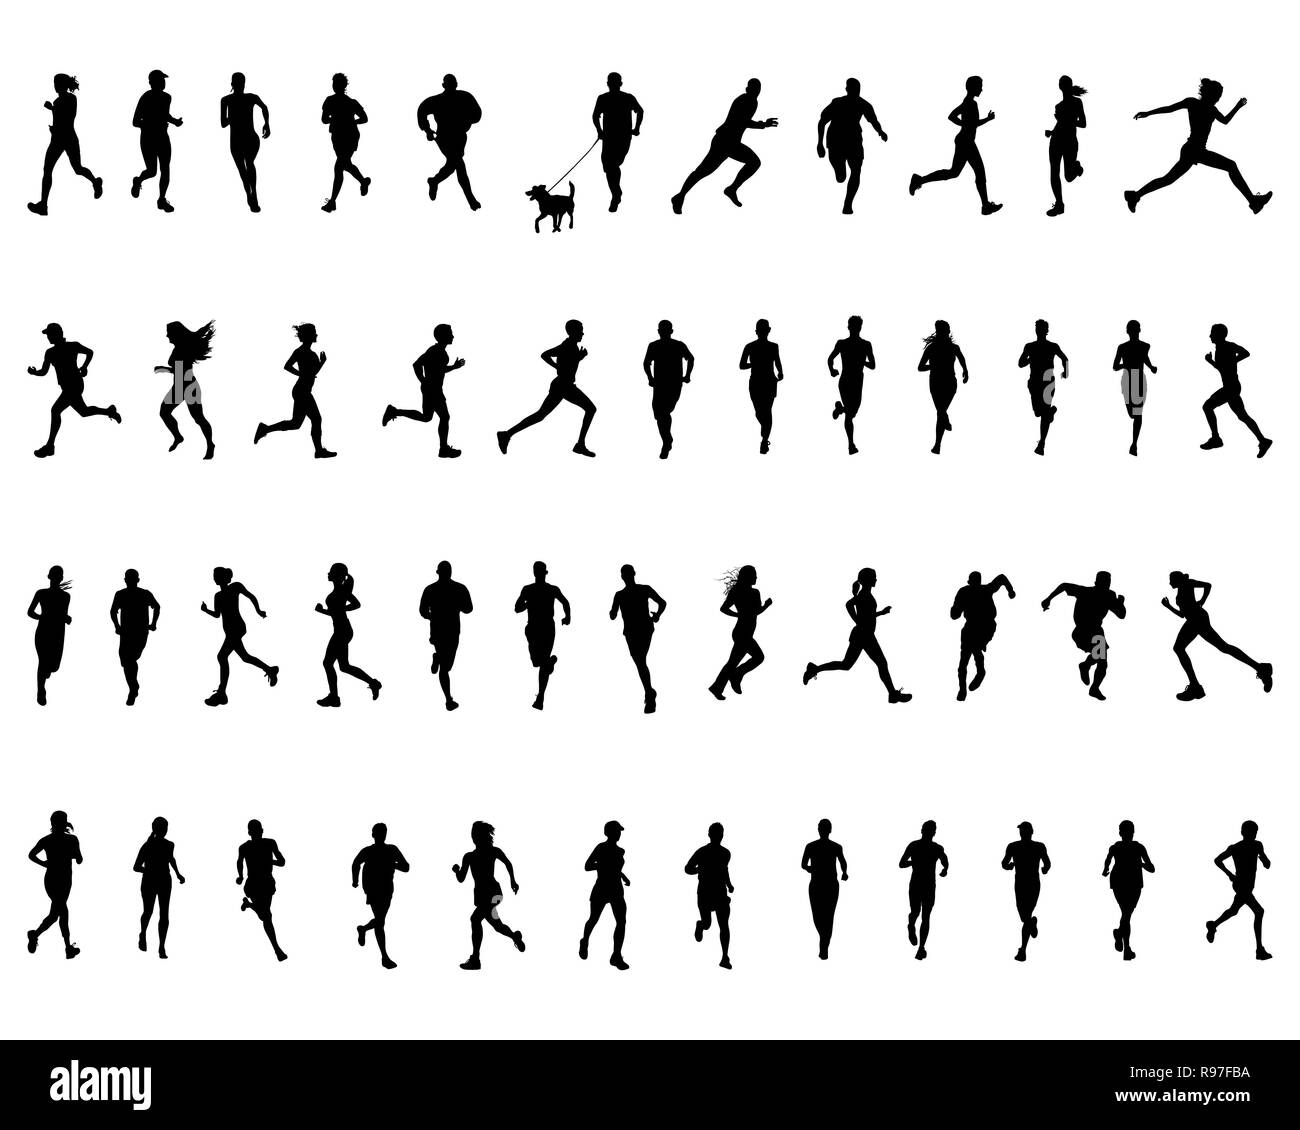 Black silhouettes of running on a white background - Stock Image